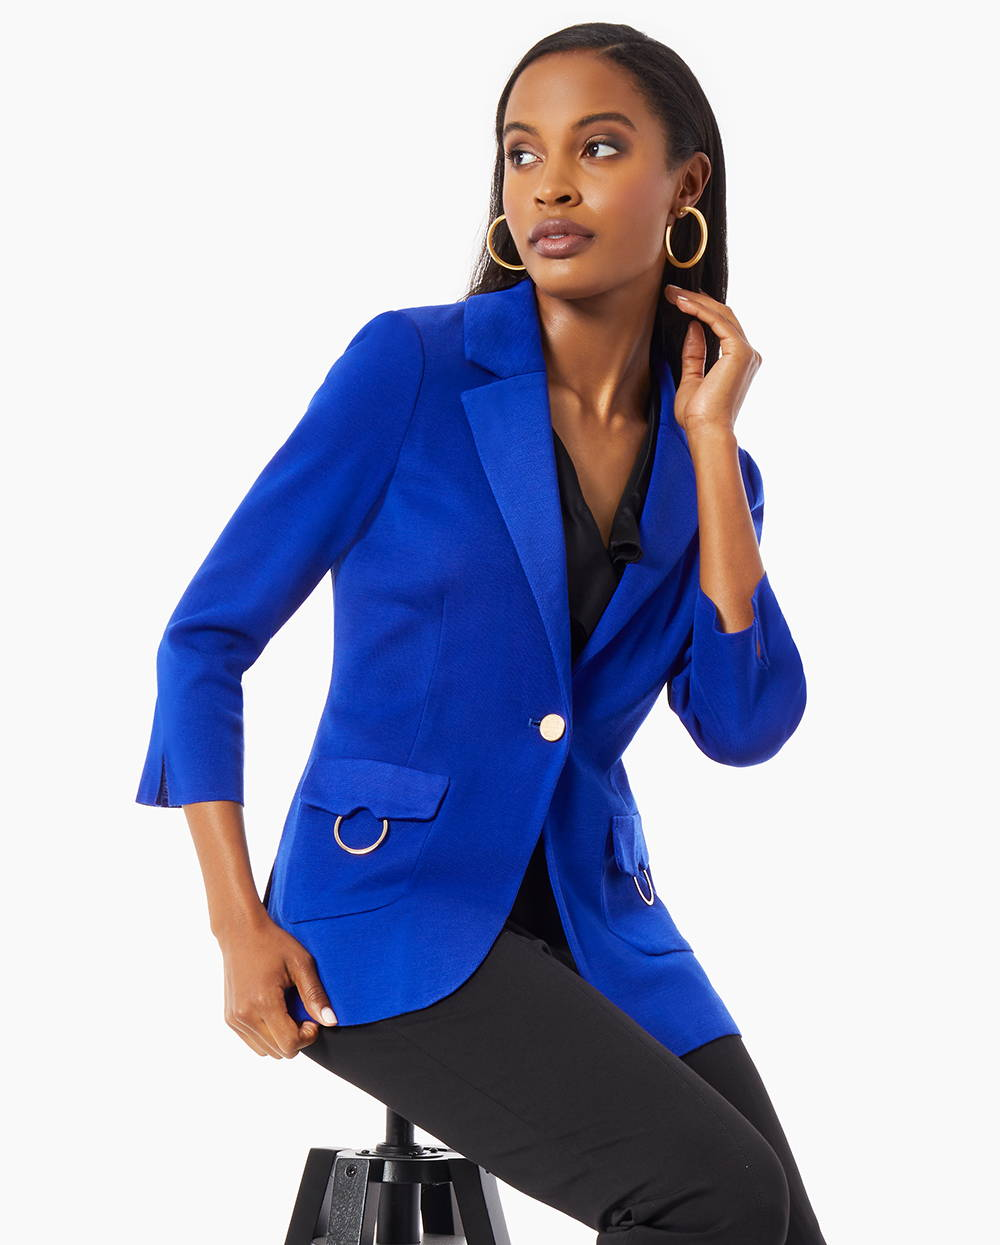 Essentials by MISOOK   Featuring the Patch Pocket Knit Jacket in Blue Flame